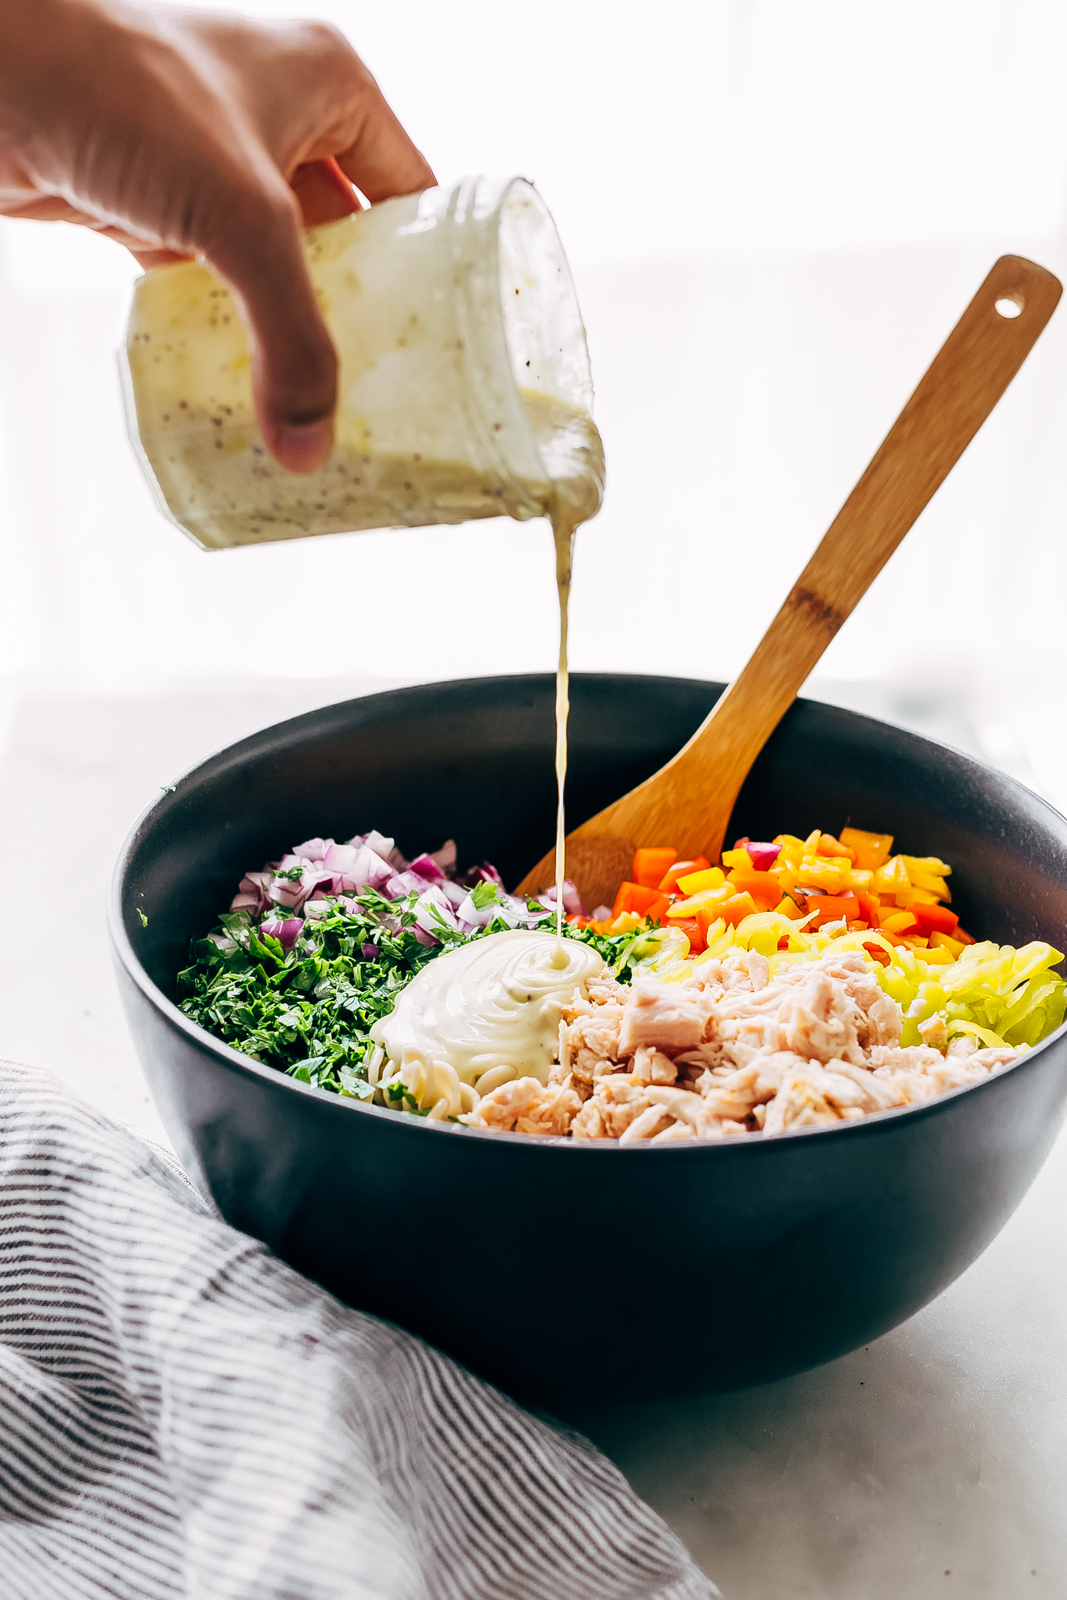 dressing being poured into bowl with salad ingredients